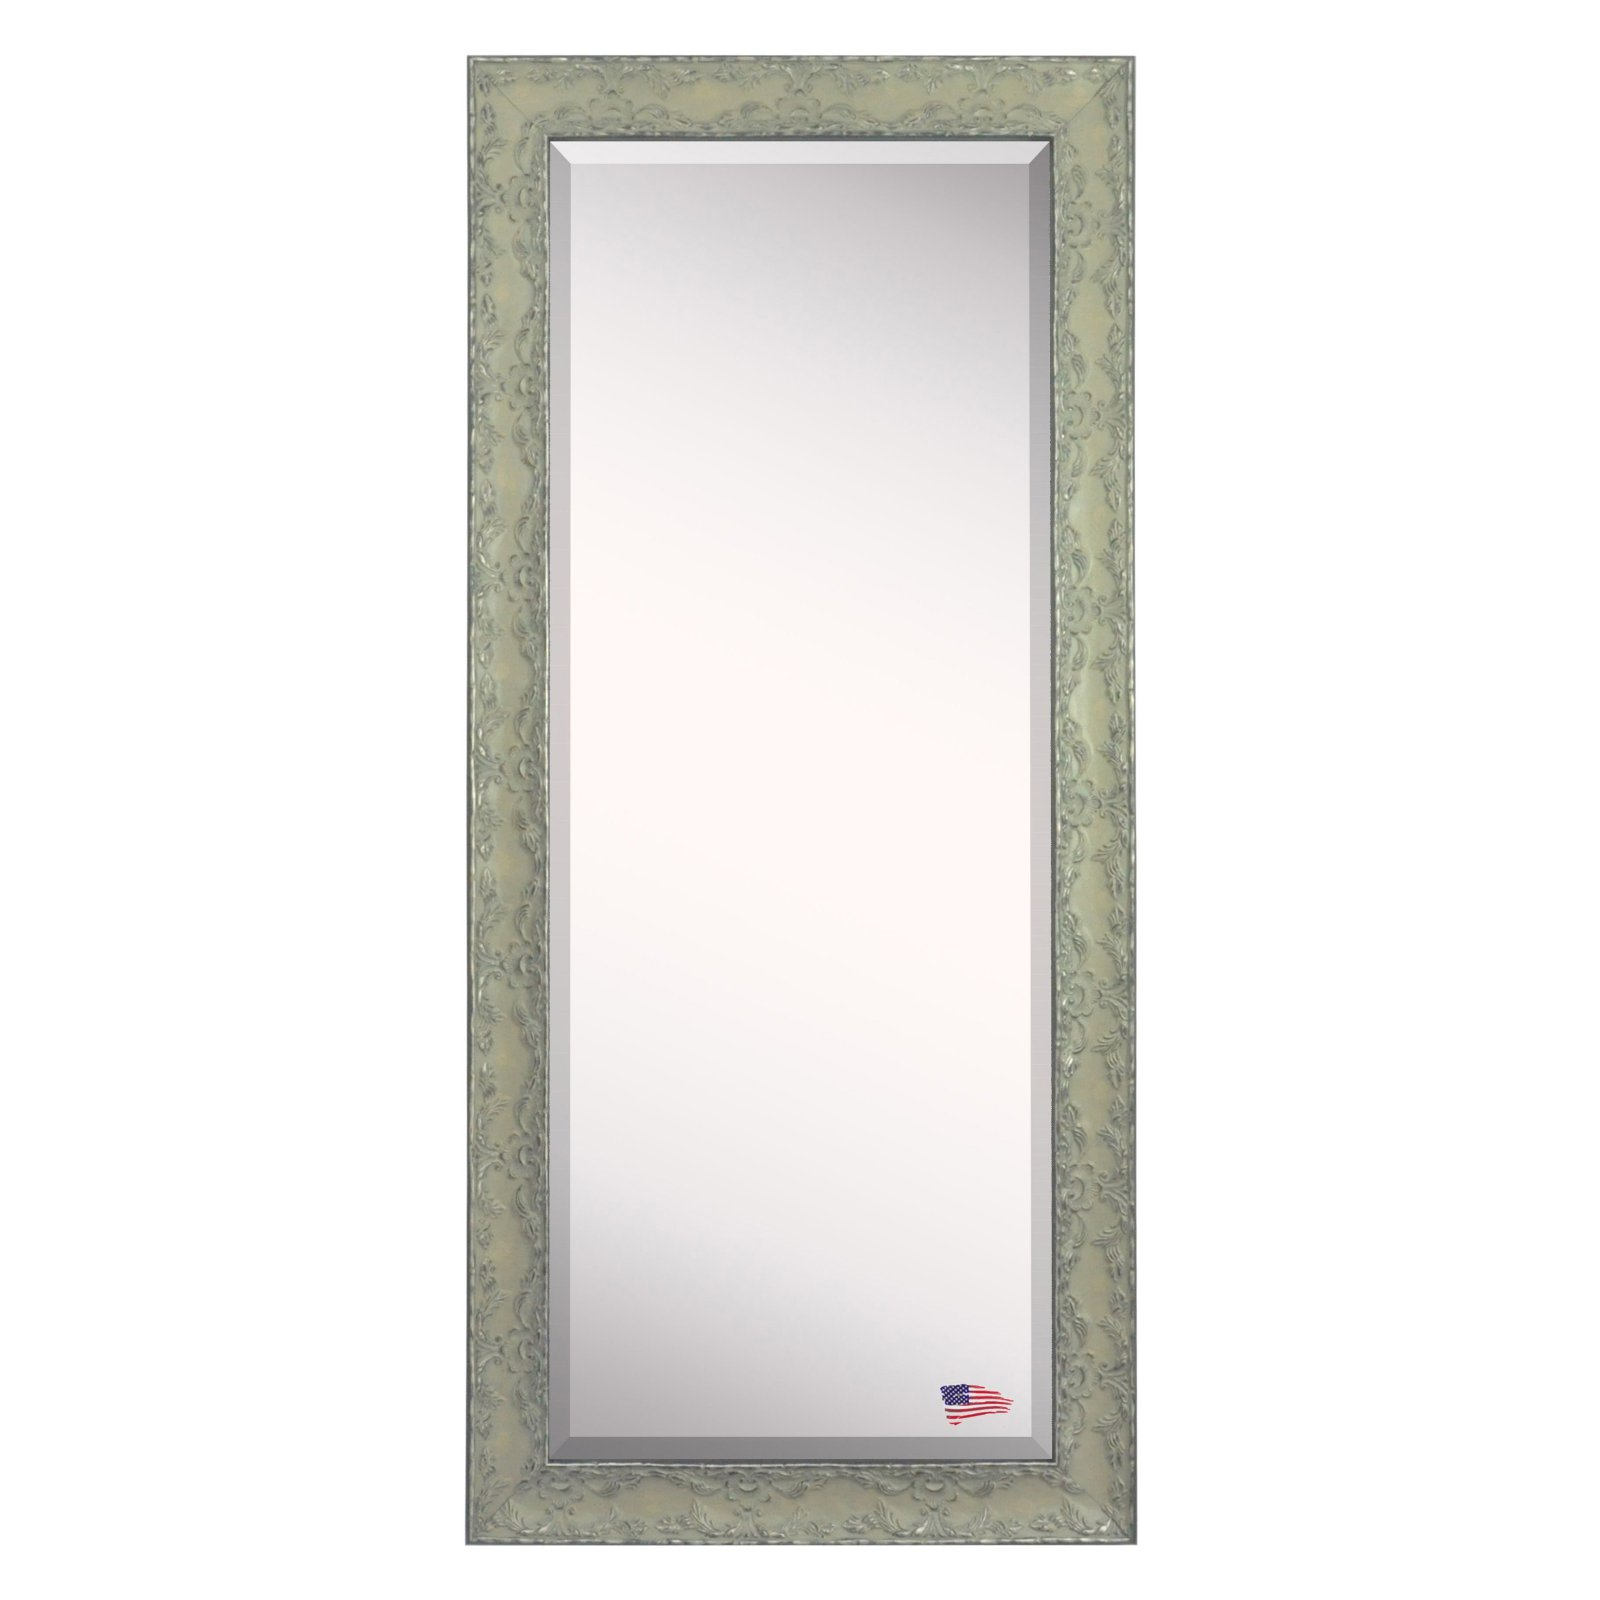 American Made Rayne Maclaren Extra Tall Floor Mirror by Overstock